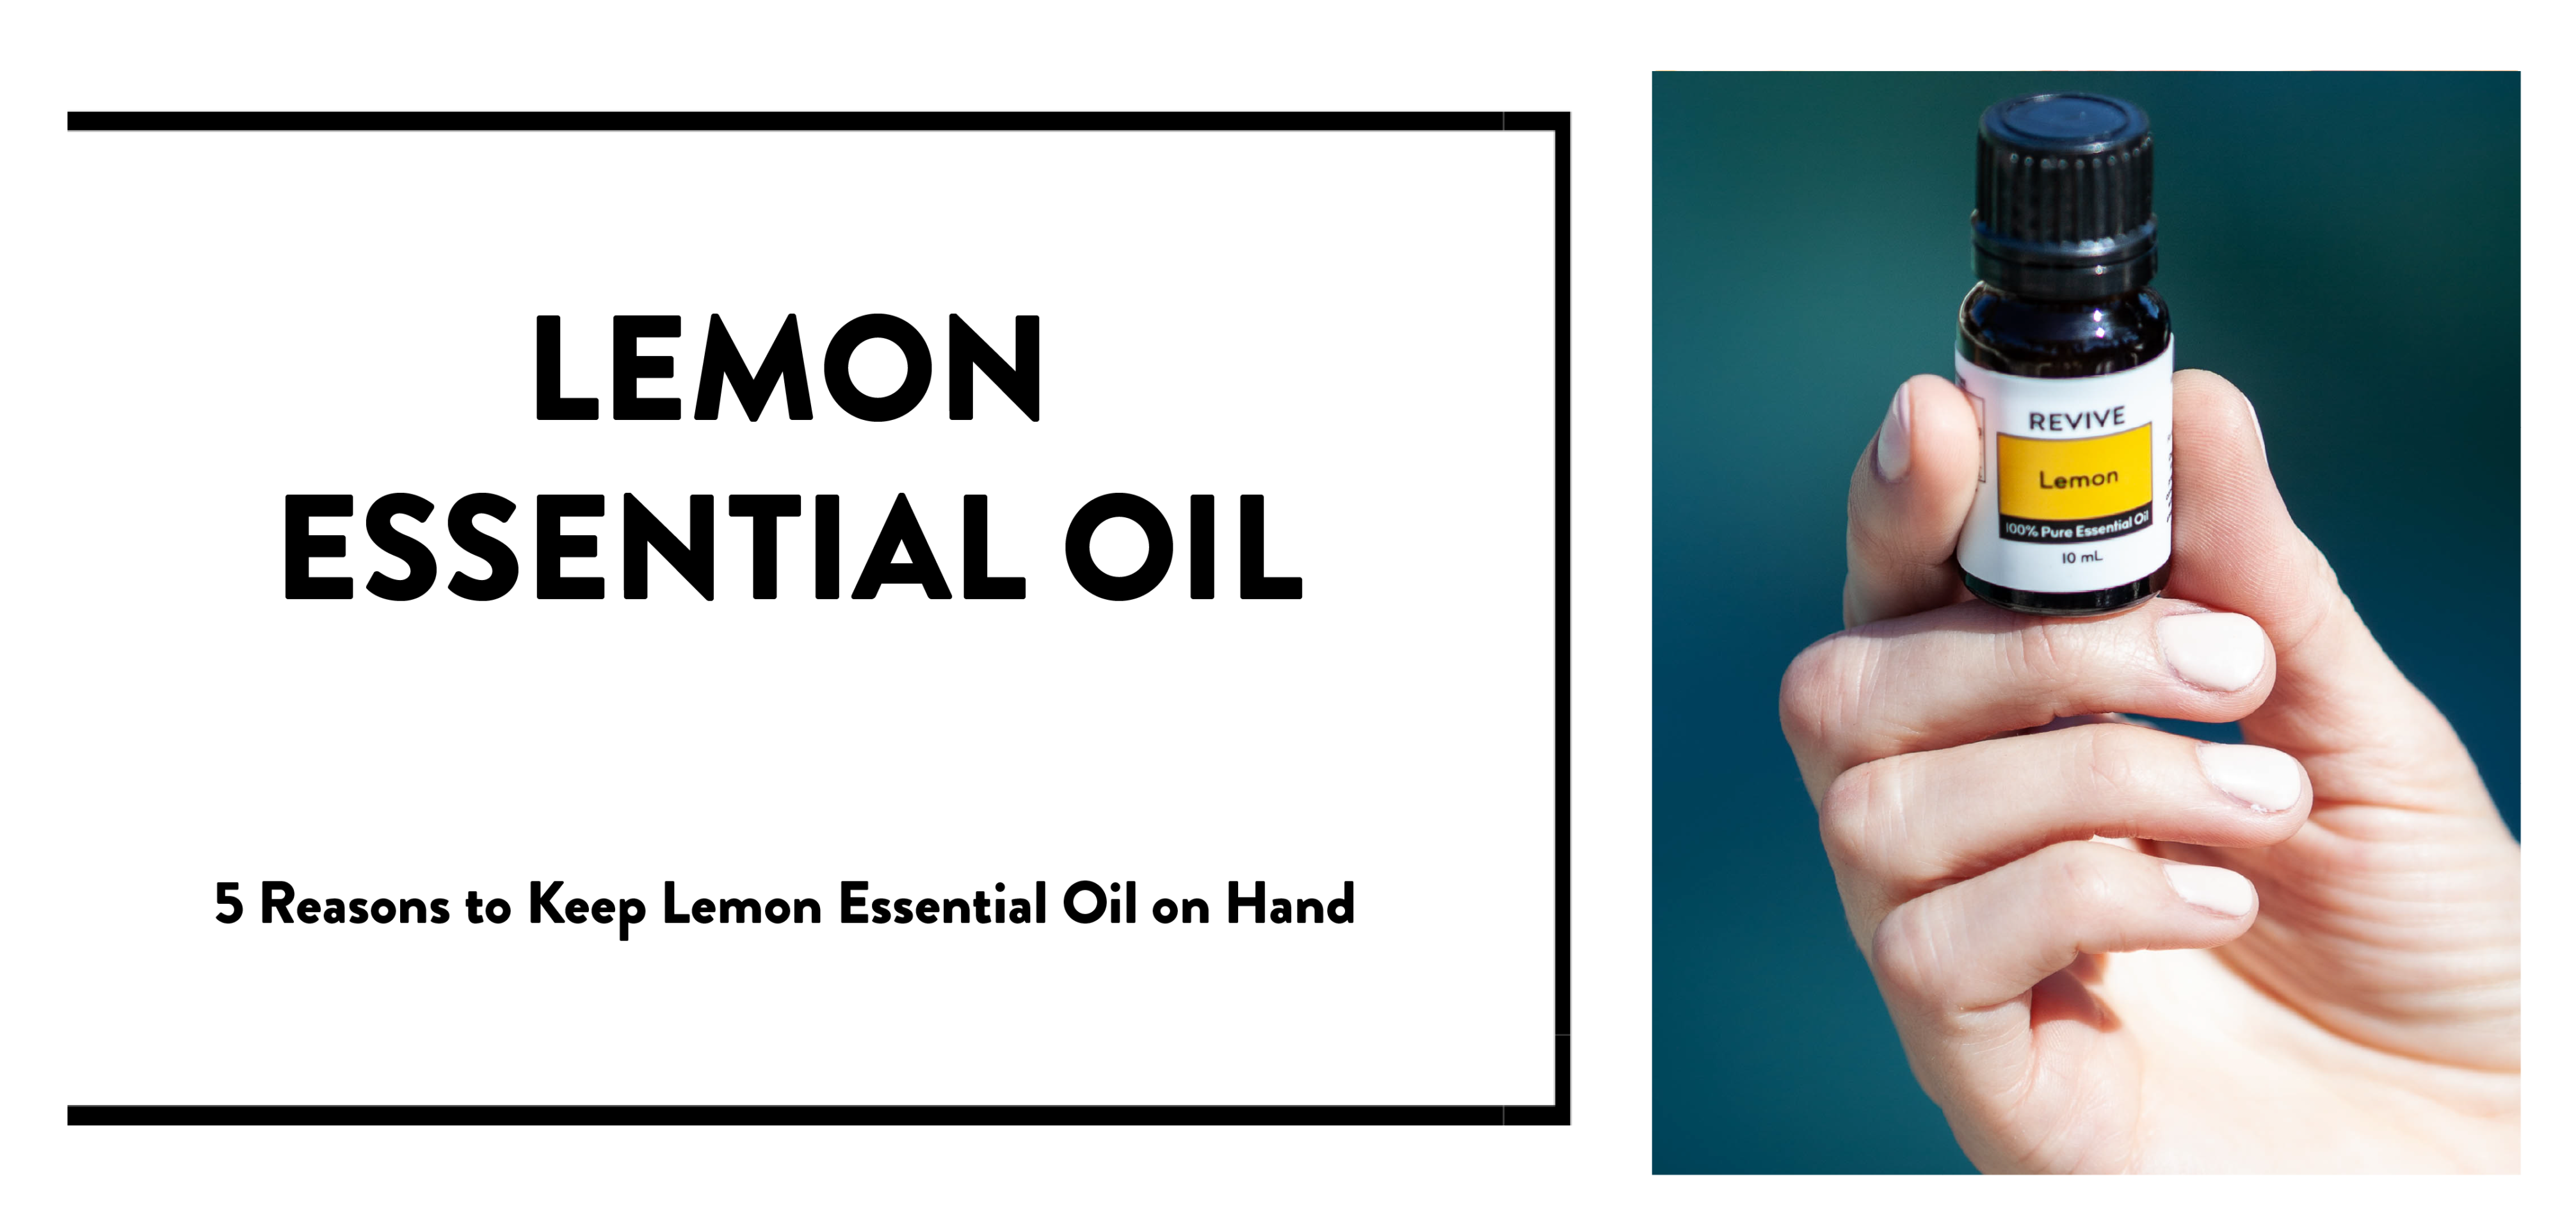 lemon essential oil 5 reasons